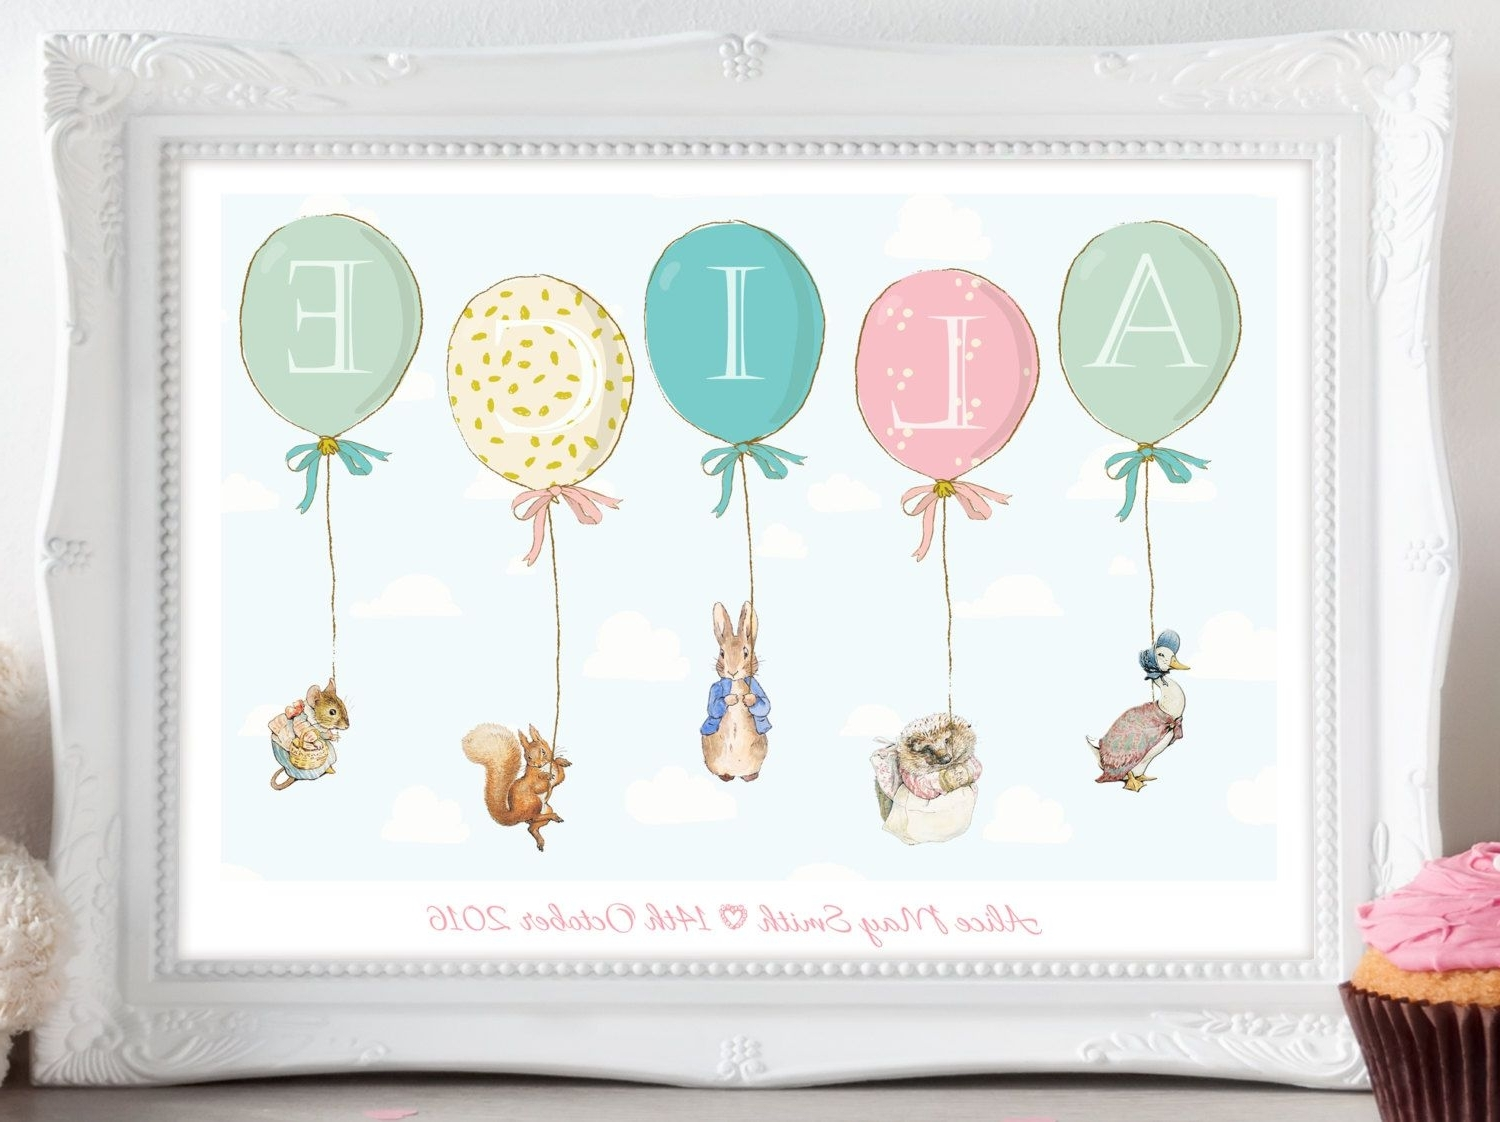 Newest Personalised Peter Rabbit Beatrix Potter Balloon Print Picture In Peter Rabbit Nursery Wall Art (Gallery 10 of 15)